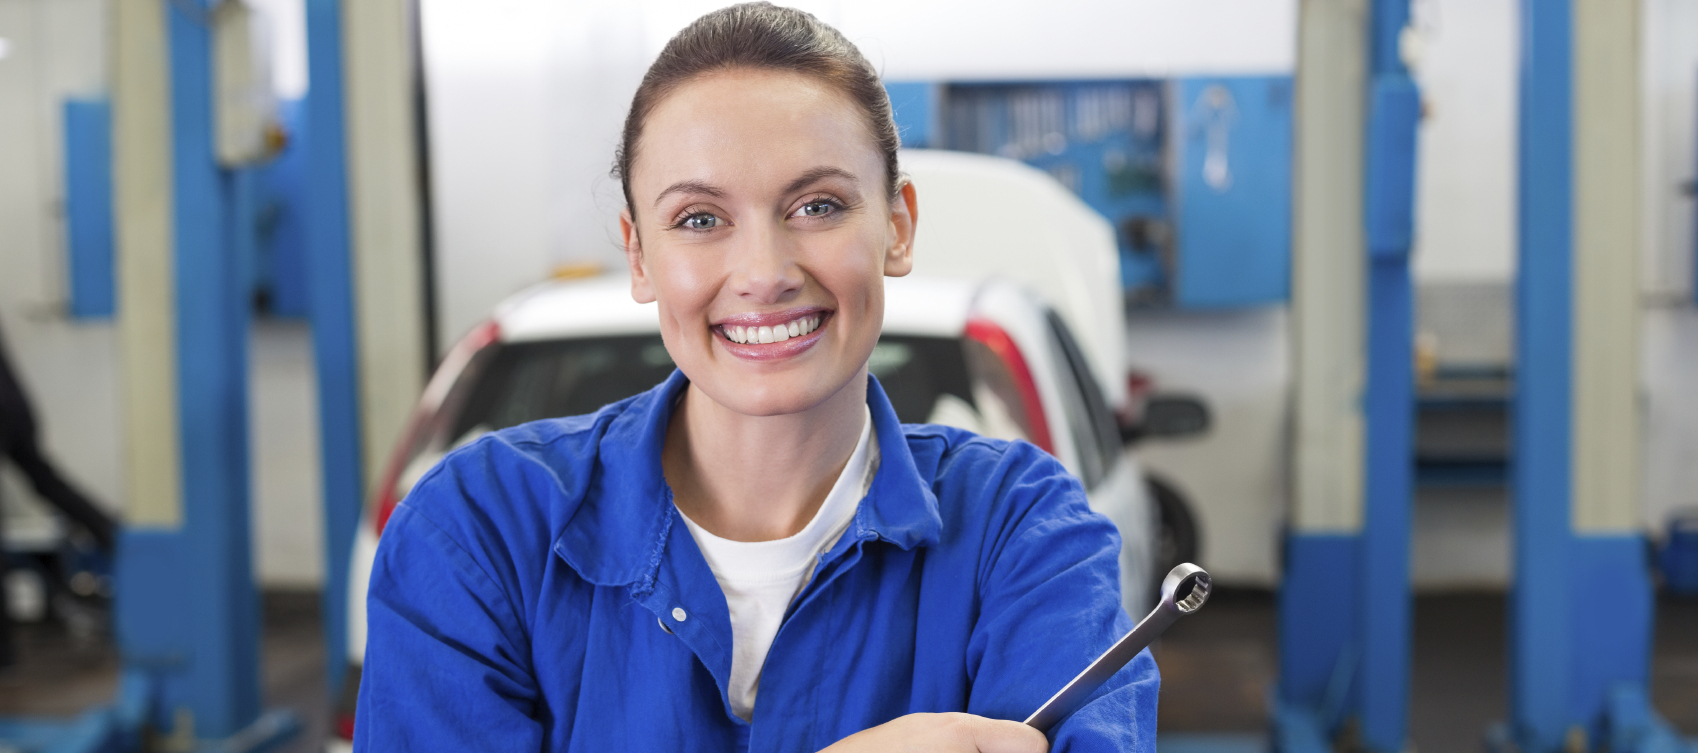 Timing Belt Replacement Service in Fredericksburg, VA